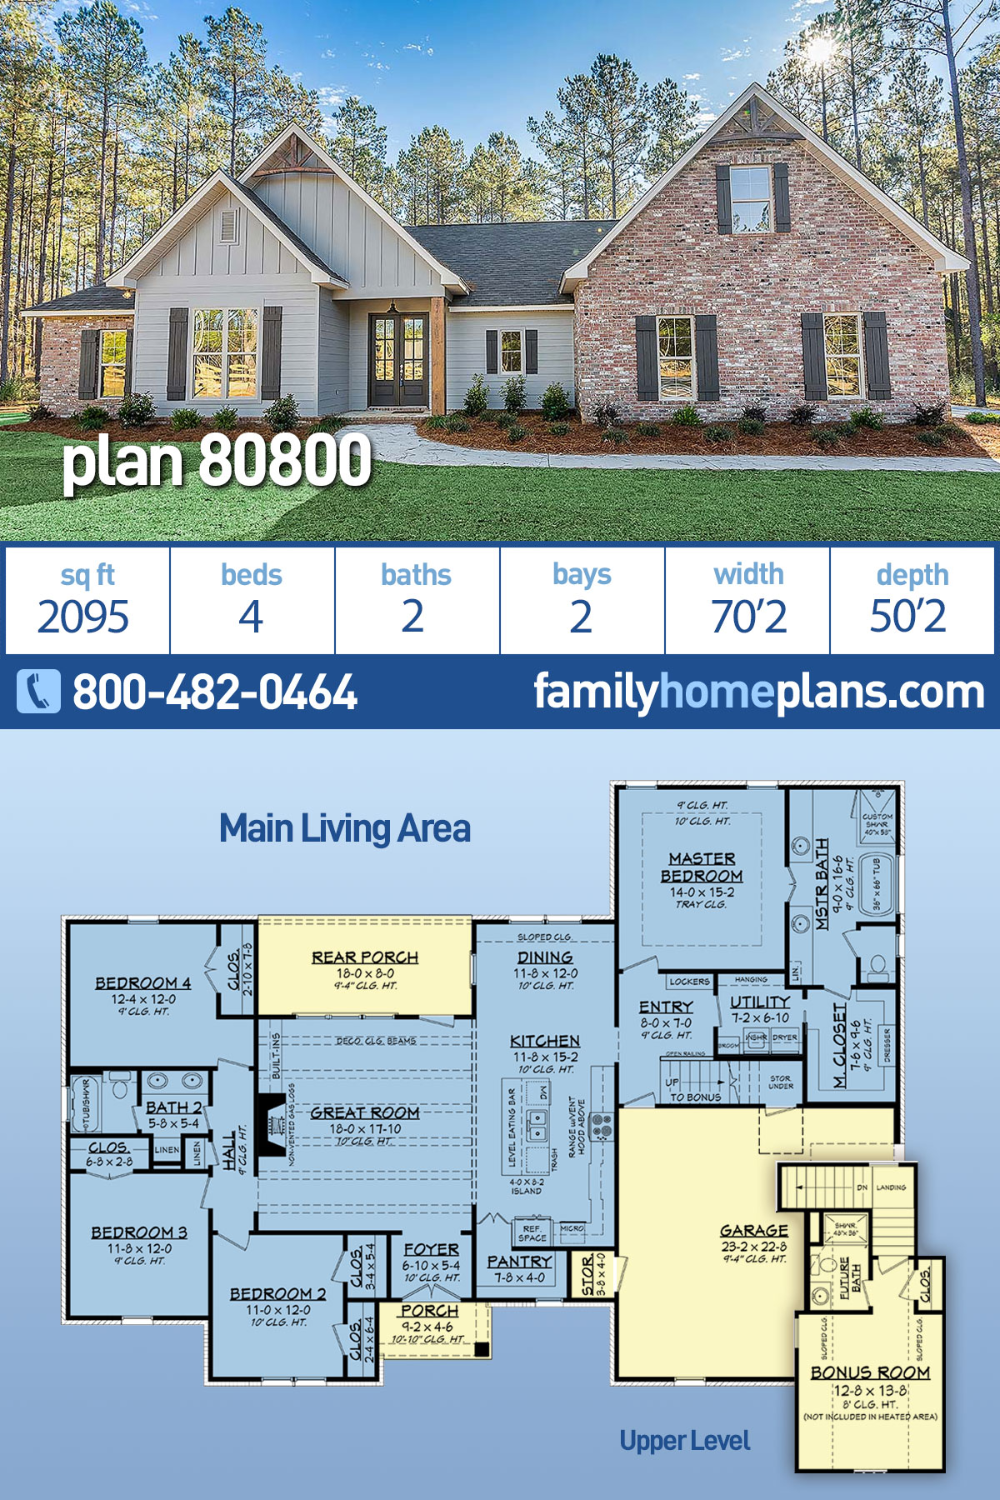 Traditional Style House Plan 80800 With 4 Bed 2 Bath 2 Car Garage In 2020 New House Plans Ranch House Plans Family House Plans